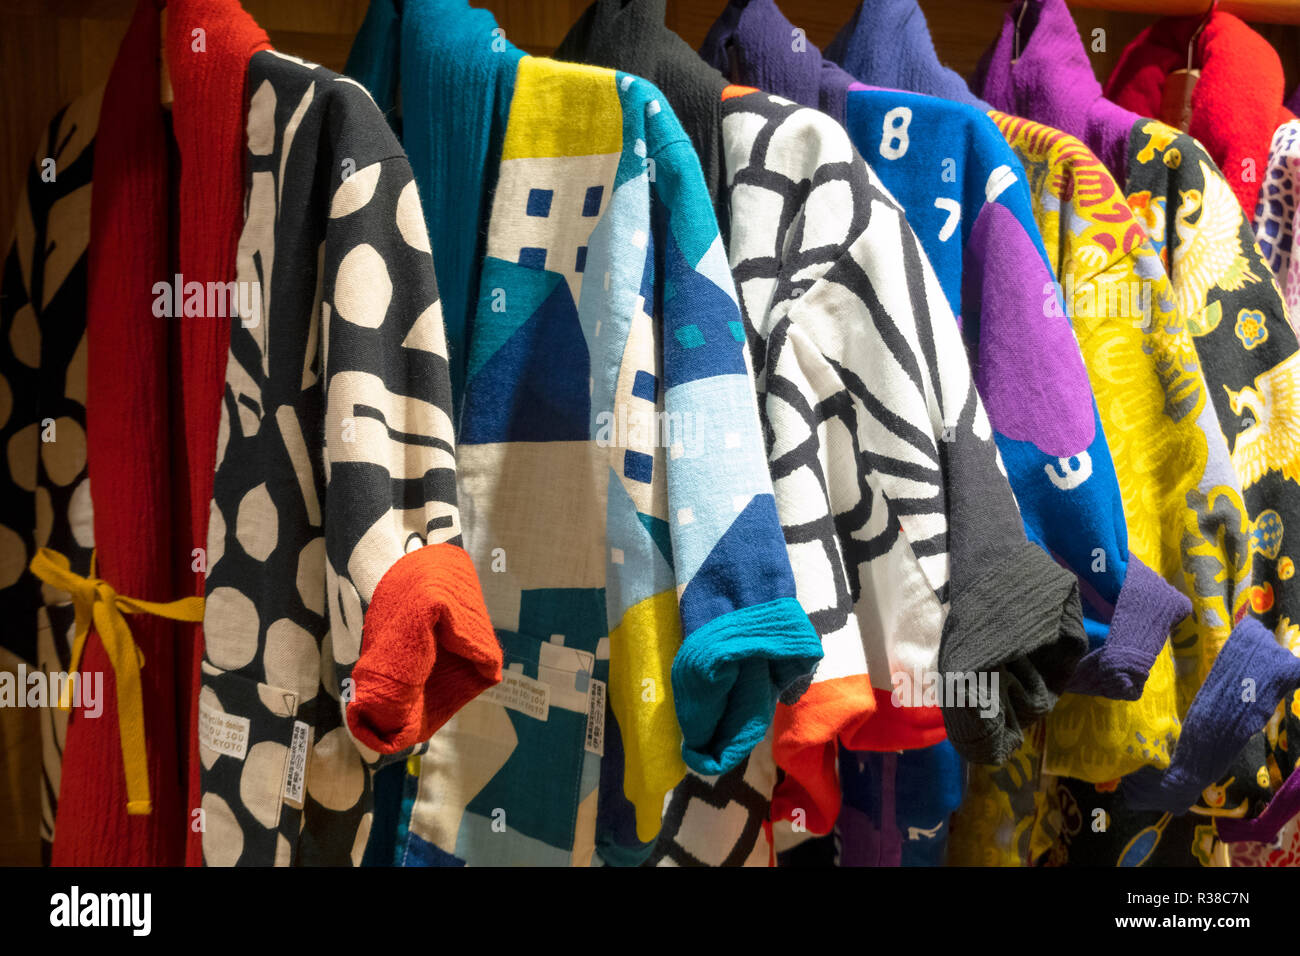 https://c7.alamy.com/comp/R38C7N/modern-japanese-fashion-brand-sou-sou-using-colorful-prints-in-kyoto-flagship-store-their-design-is-inspired-by-traditional-japanese-clothing-R38C7N.jpg